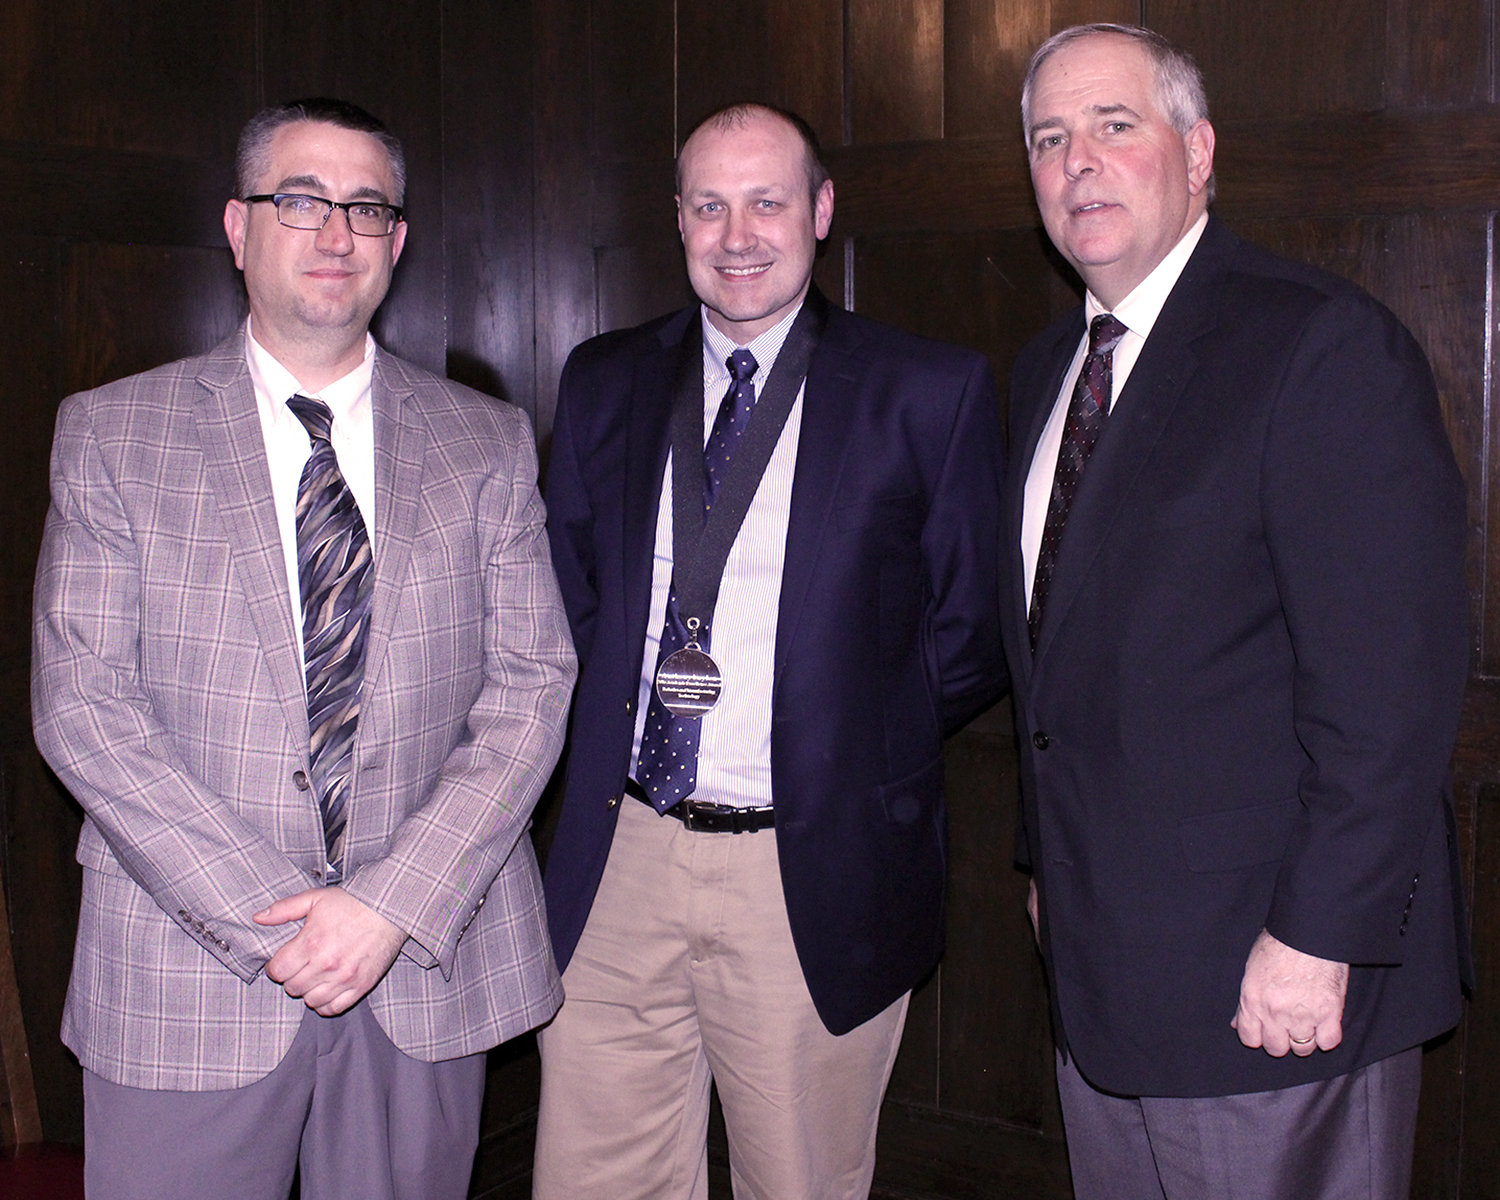 Pictured from left to right: Dean of Robotics & Manufacturing E.J. Daigle, Anthony Laylon and College President Rich Wagner